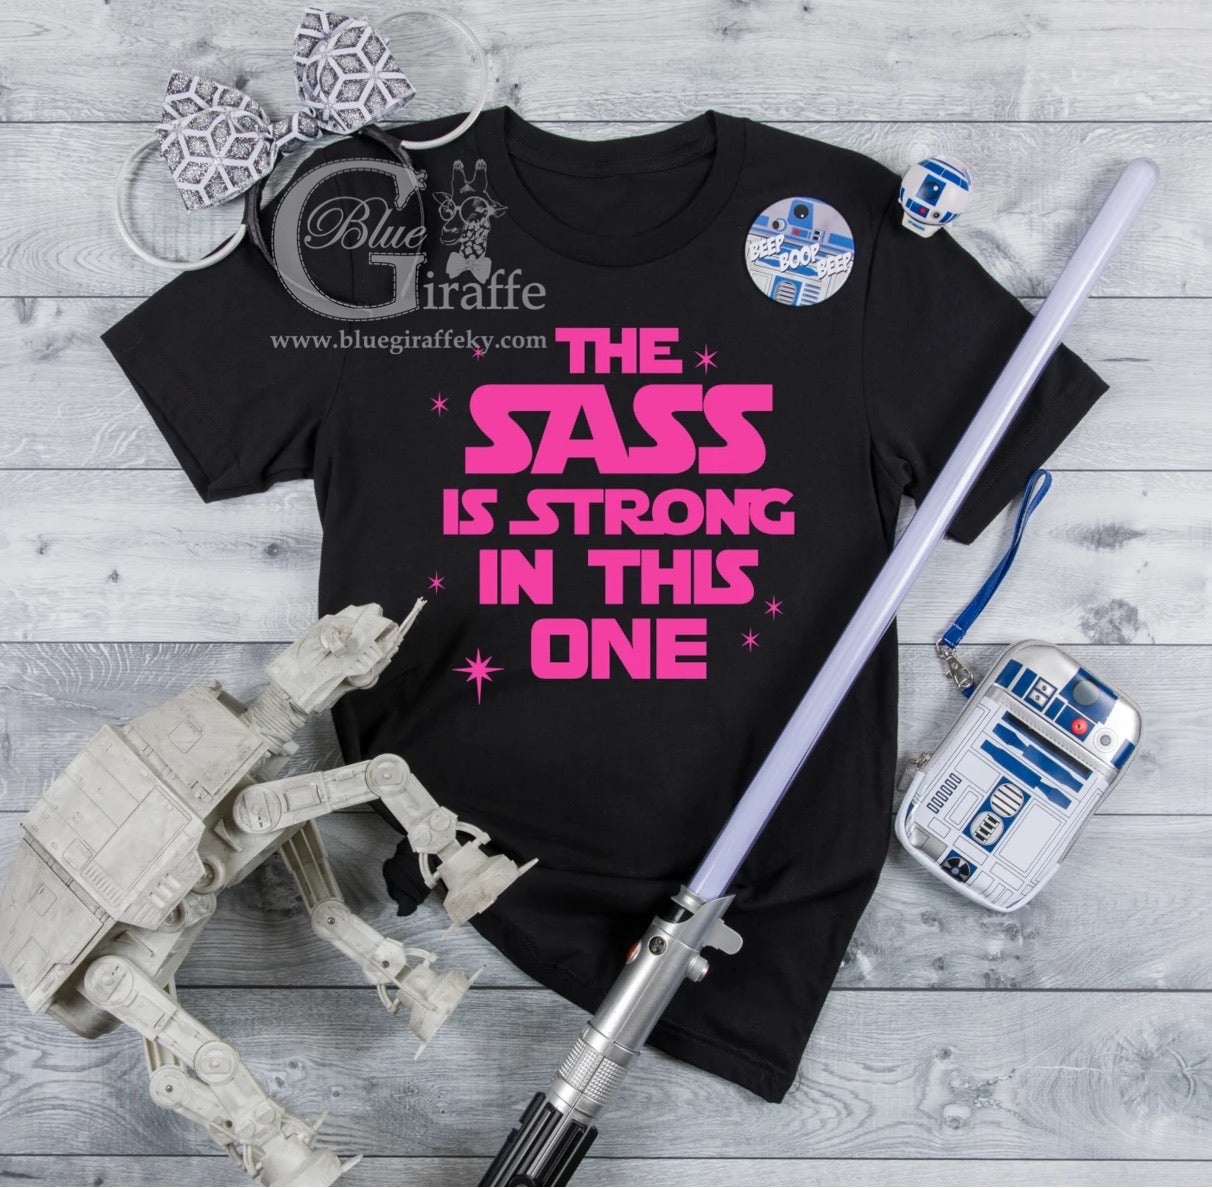 The Sass is Strong Tee